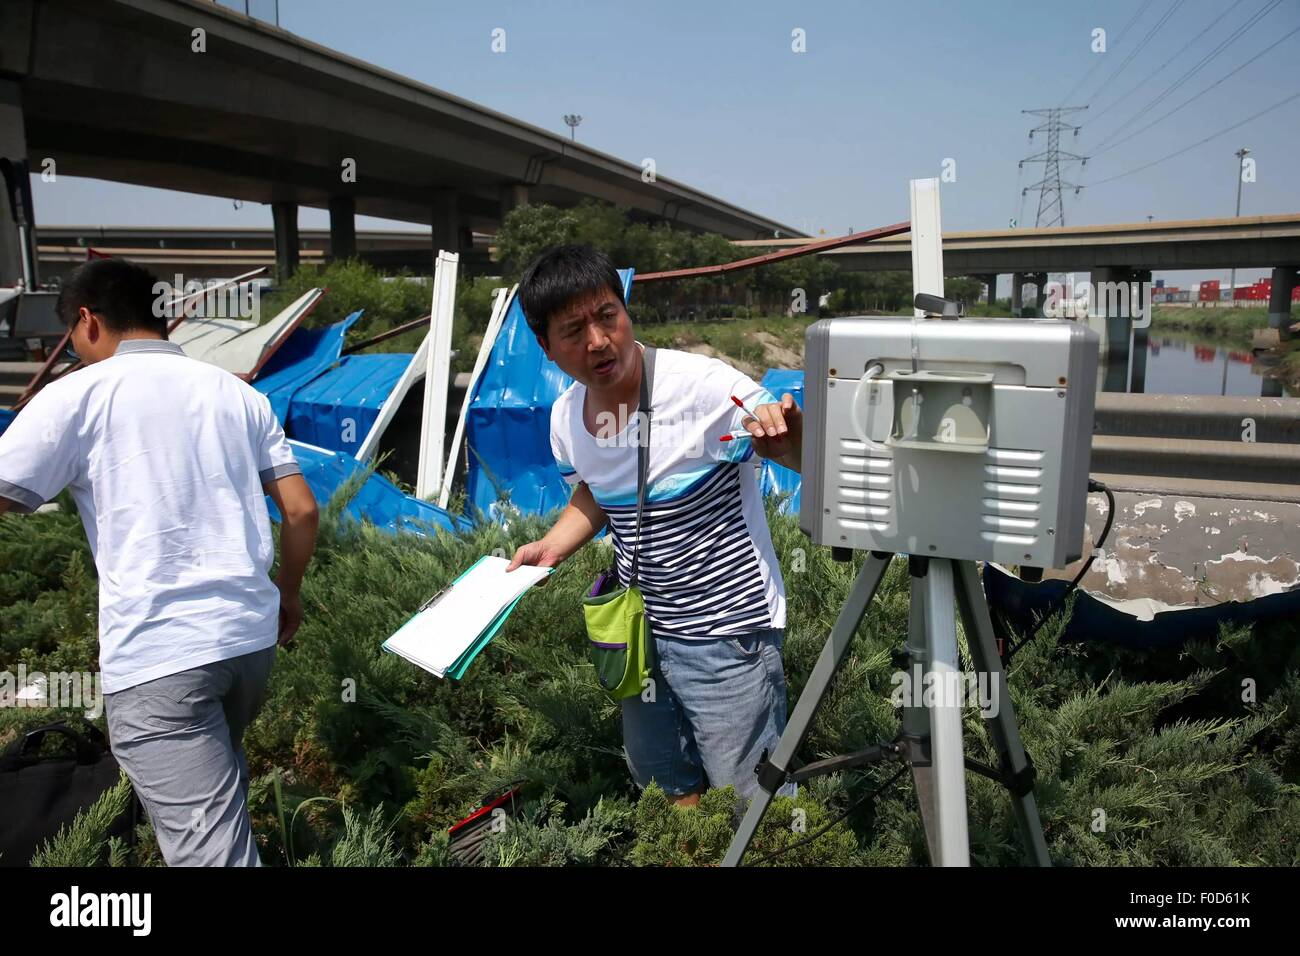 Tianjin, China. 13th Aug, 2015. Staff members of Tianjin Environment Monitoring Center monitors air quality near - Stock Image